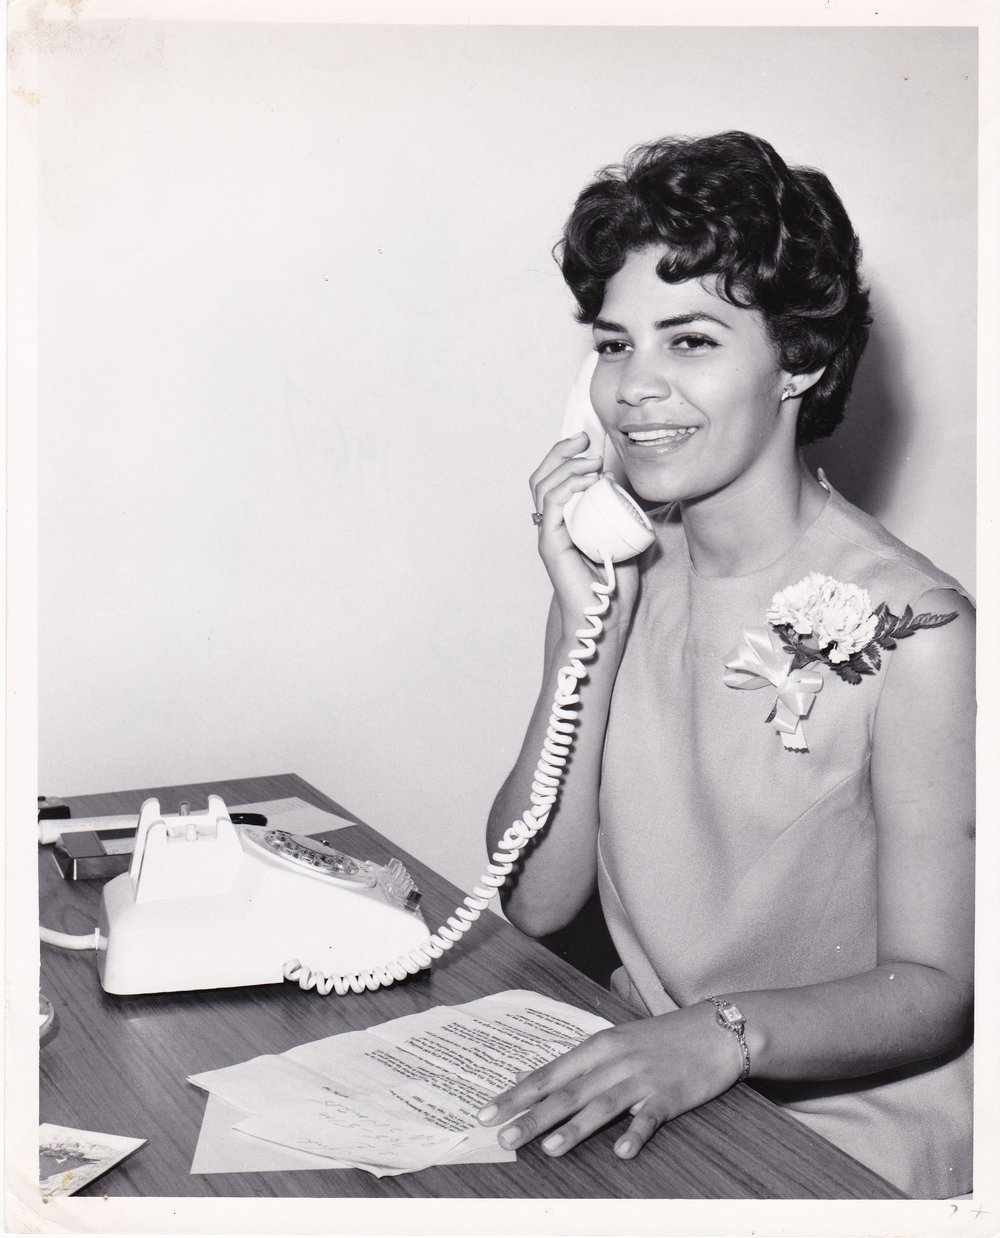 '67 Joann Gauthier talking to Transworld Airlines